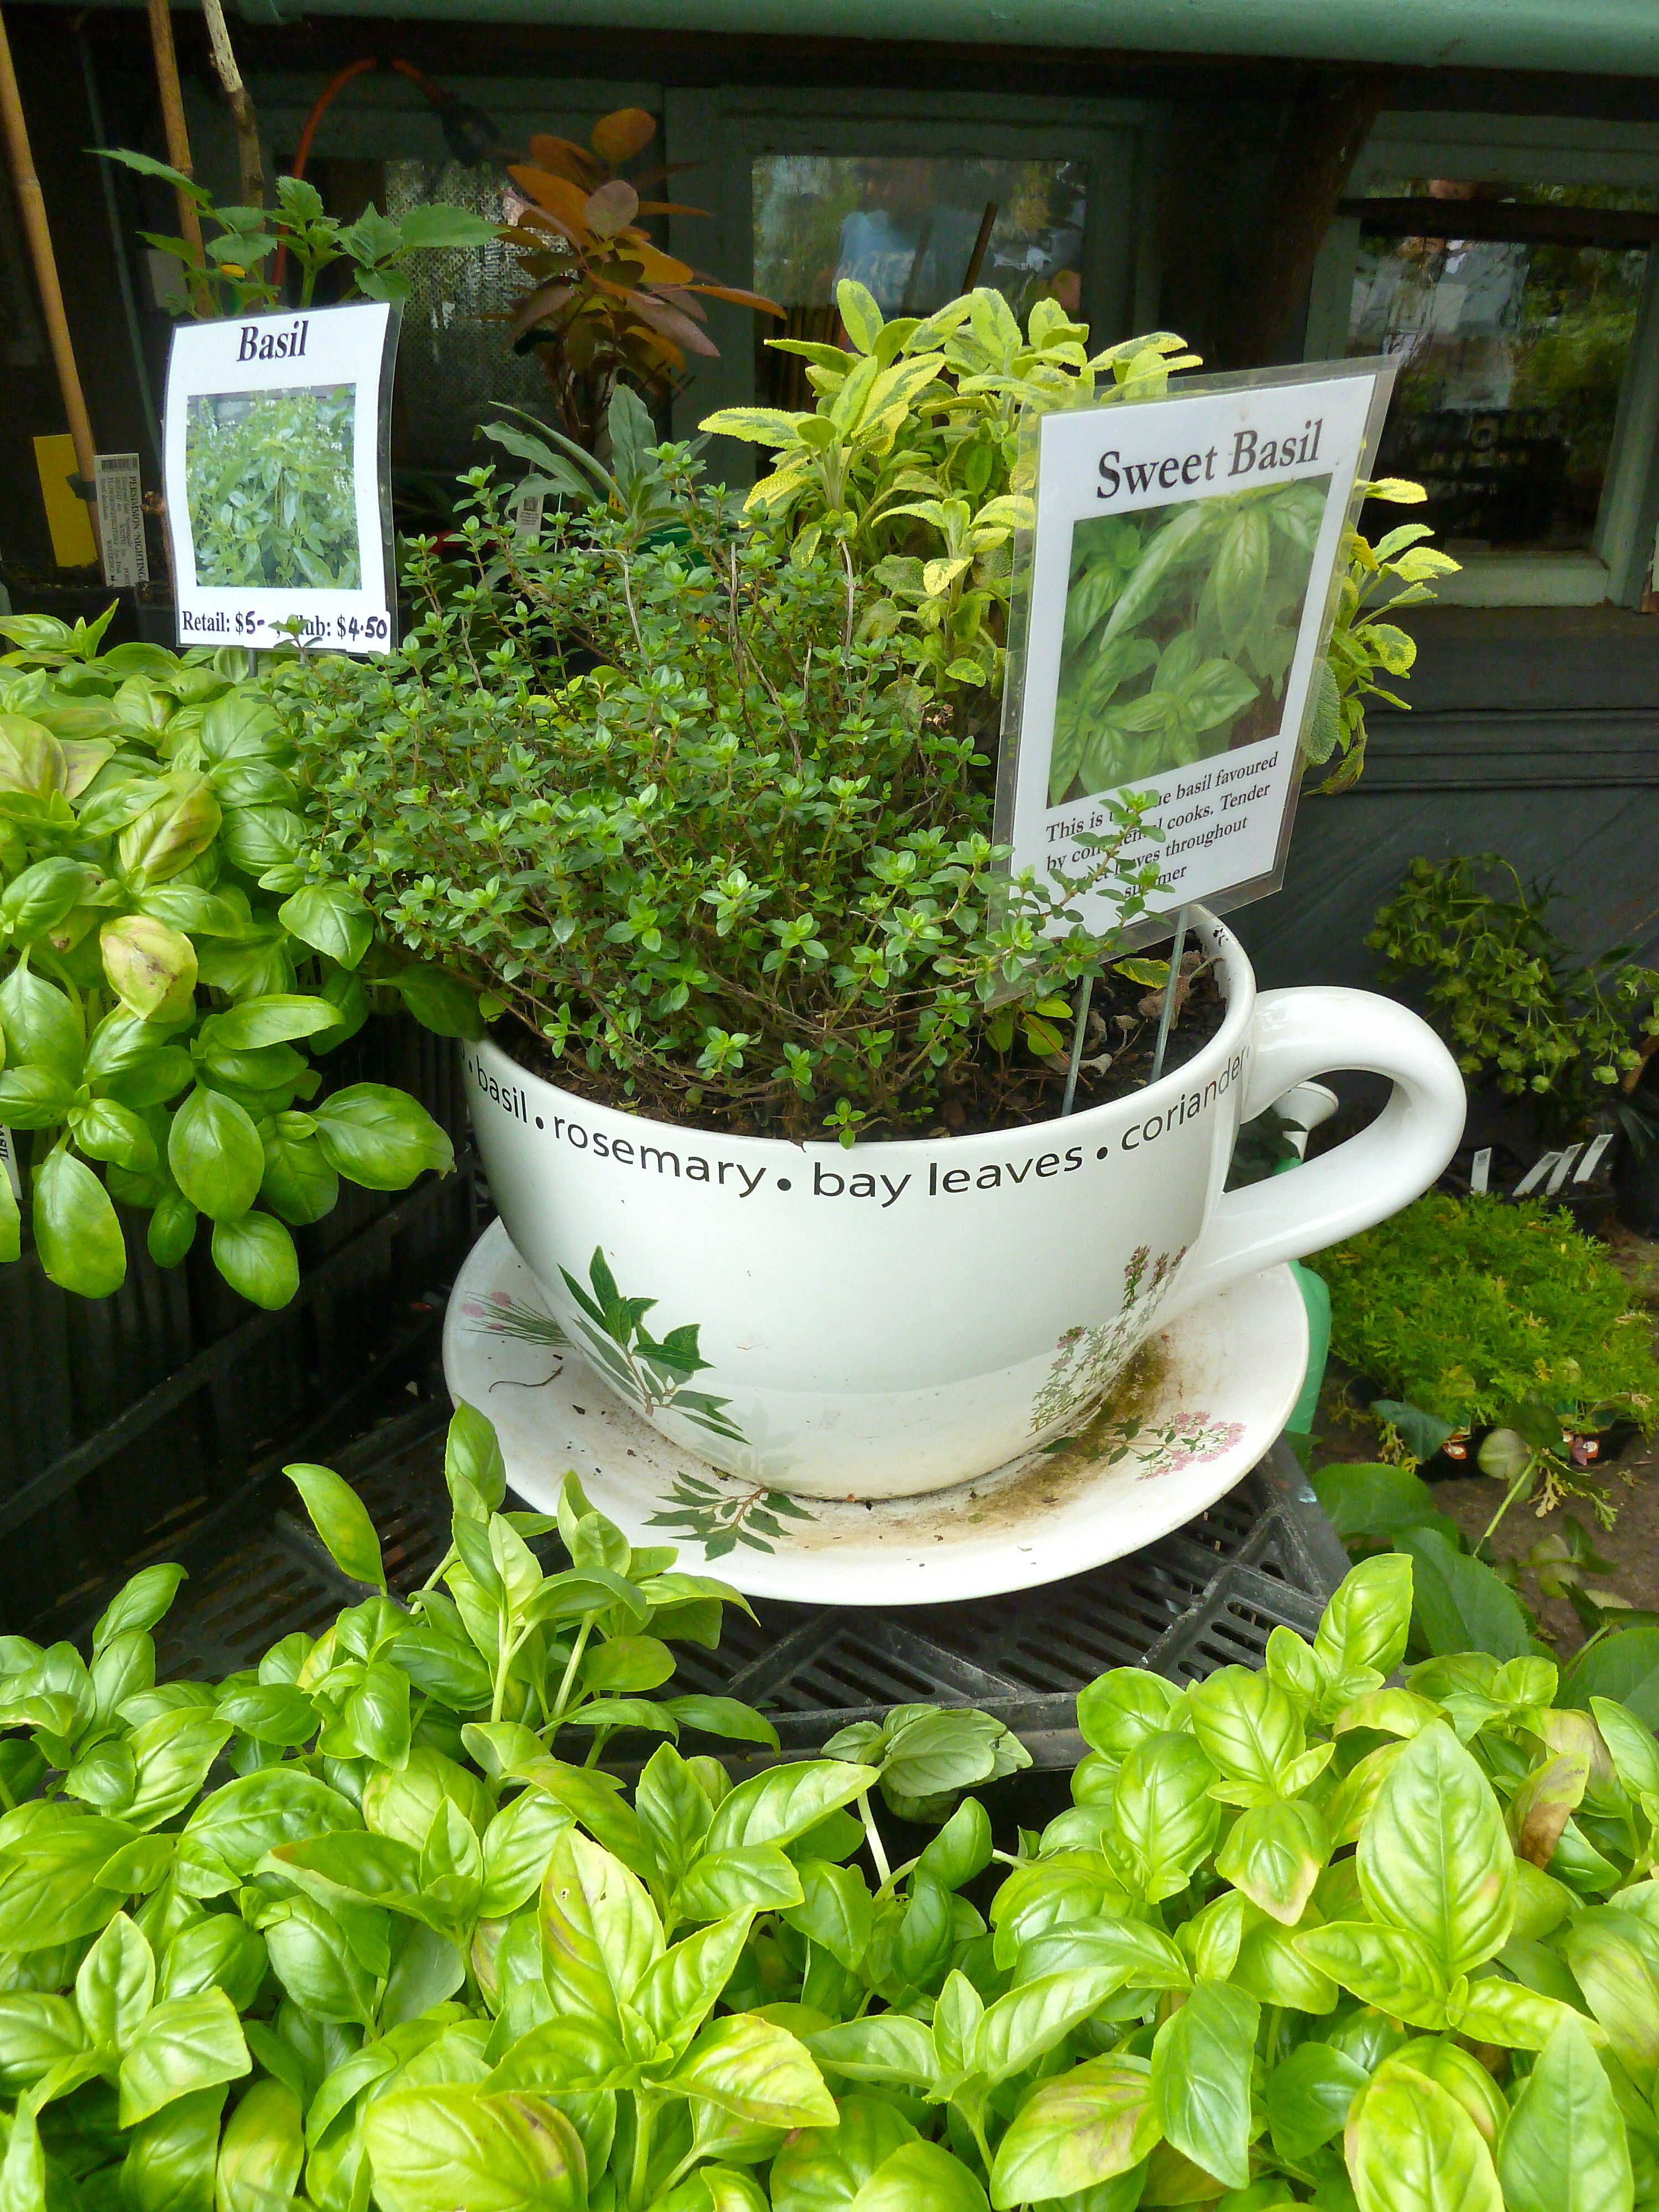 Pin by Jenn Hall on Patch Plant gifts, Garden basket, Herbs